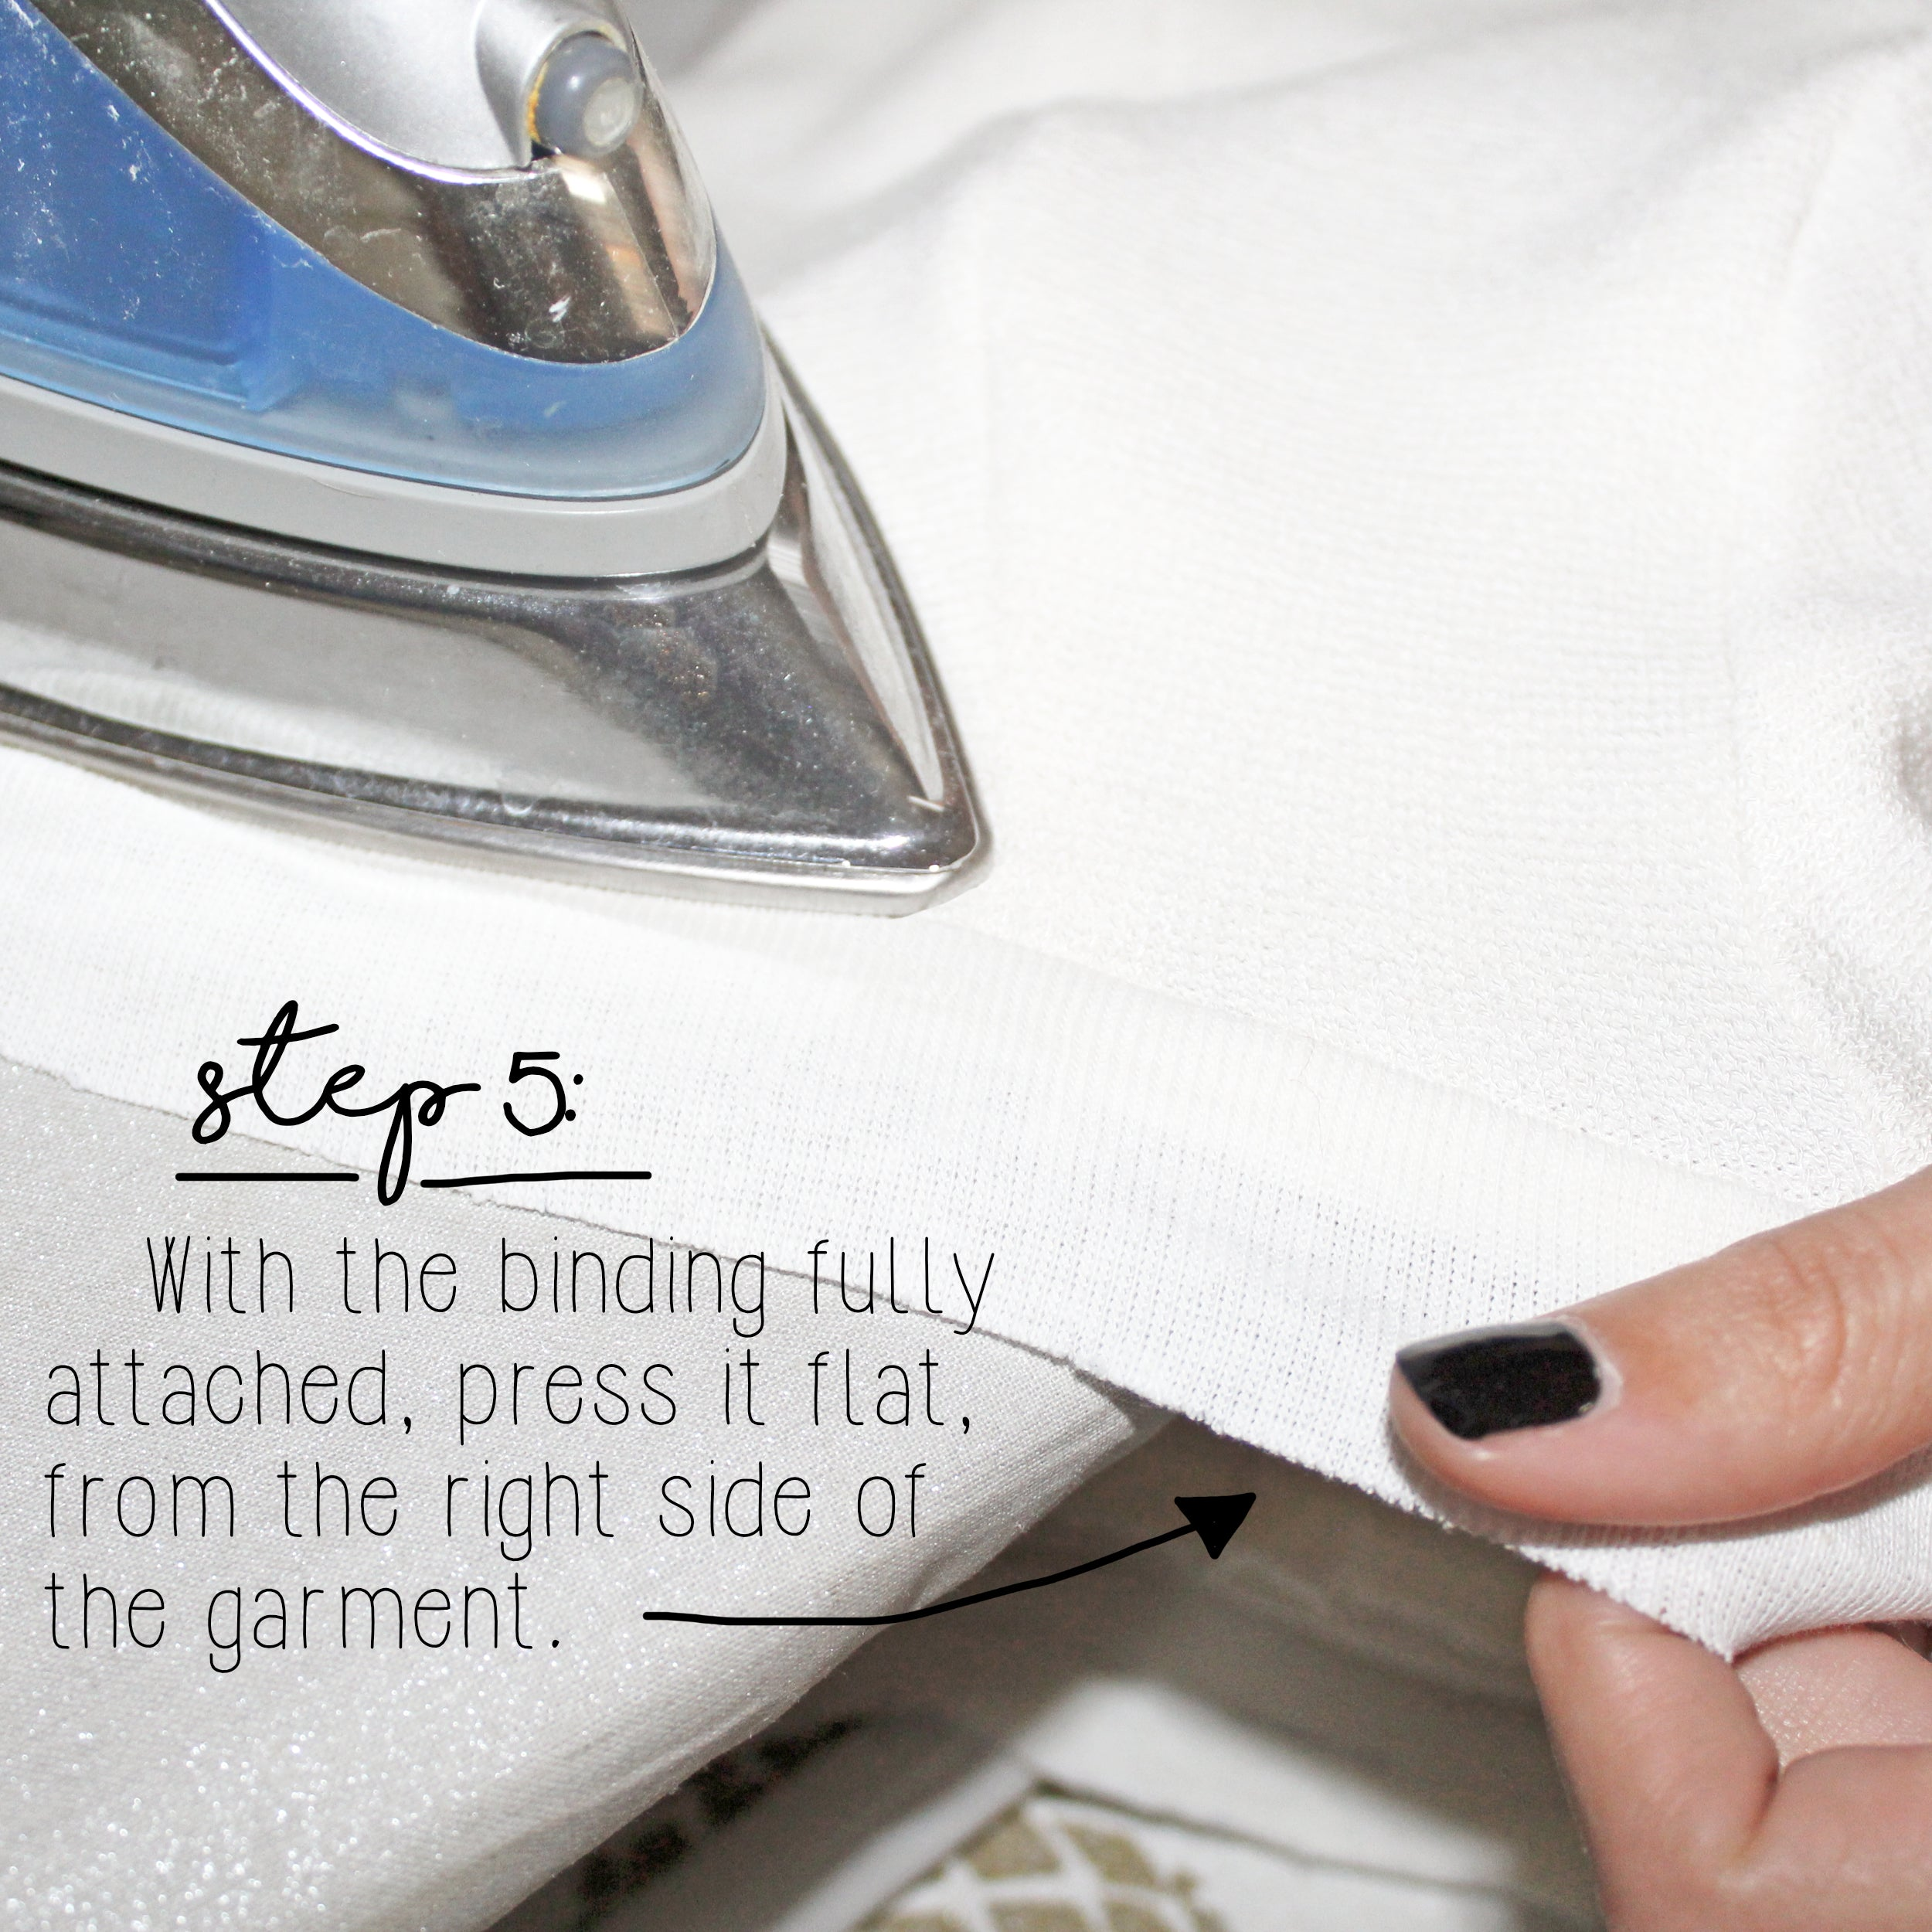 How To Sew A Knit Seam Binding Sewing Tutorial: Step 5